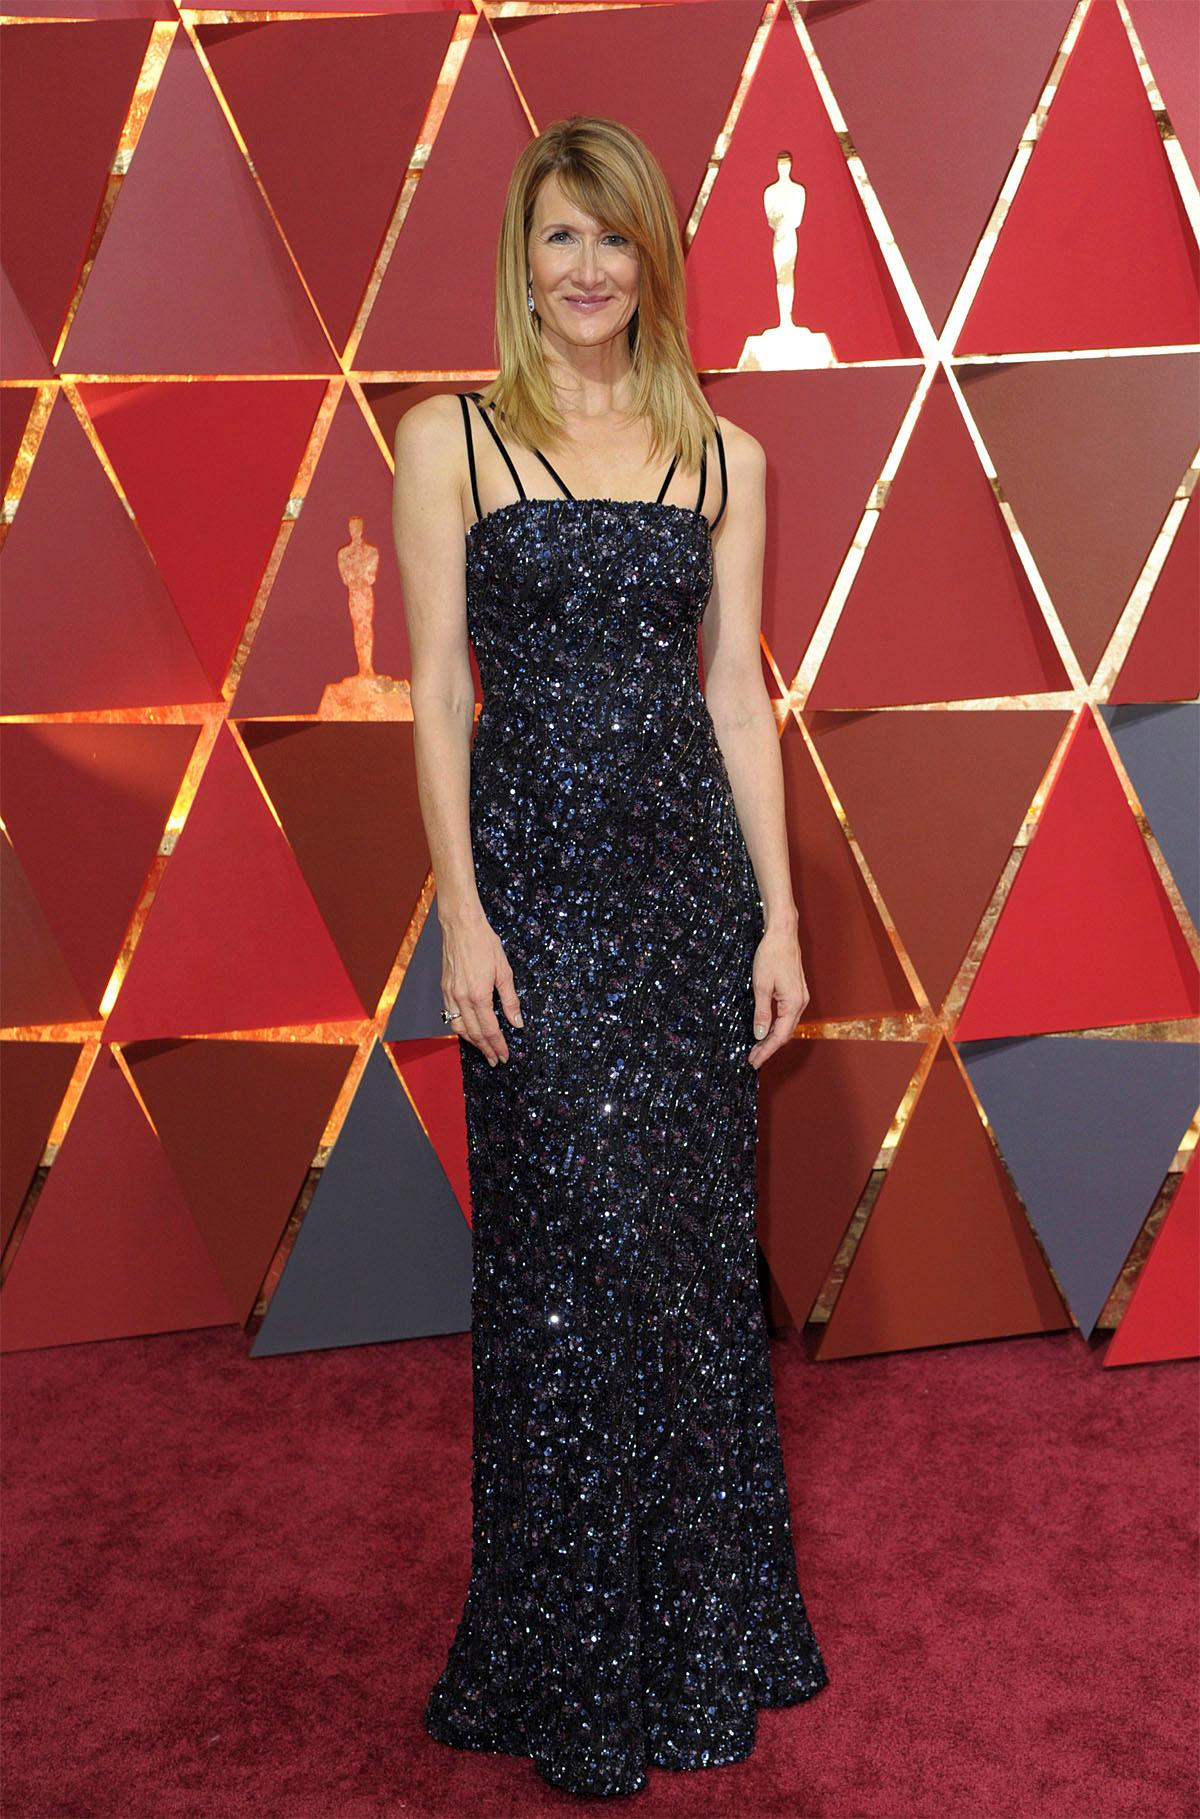 Laura Dern arrives at the Oscars on Sunday, Feb. 26, 2017, at the Dolby Theatre in Los Angeles. (Photo by Richard Shotwell/Invision/AP)